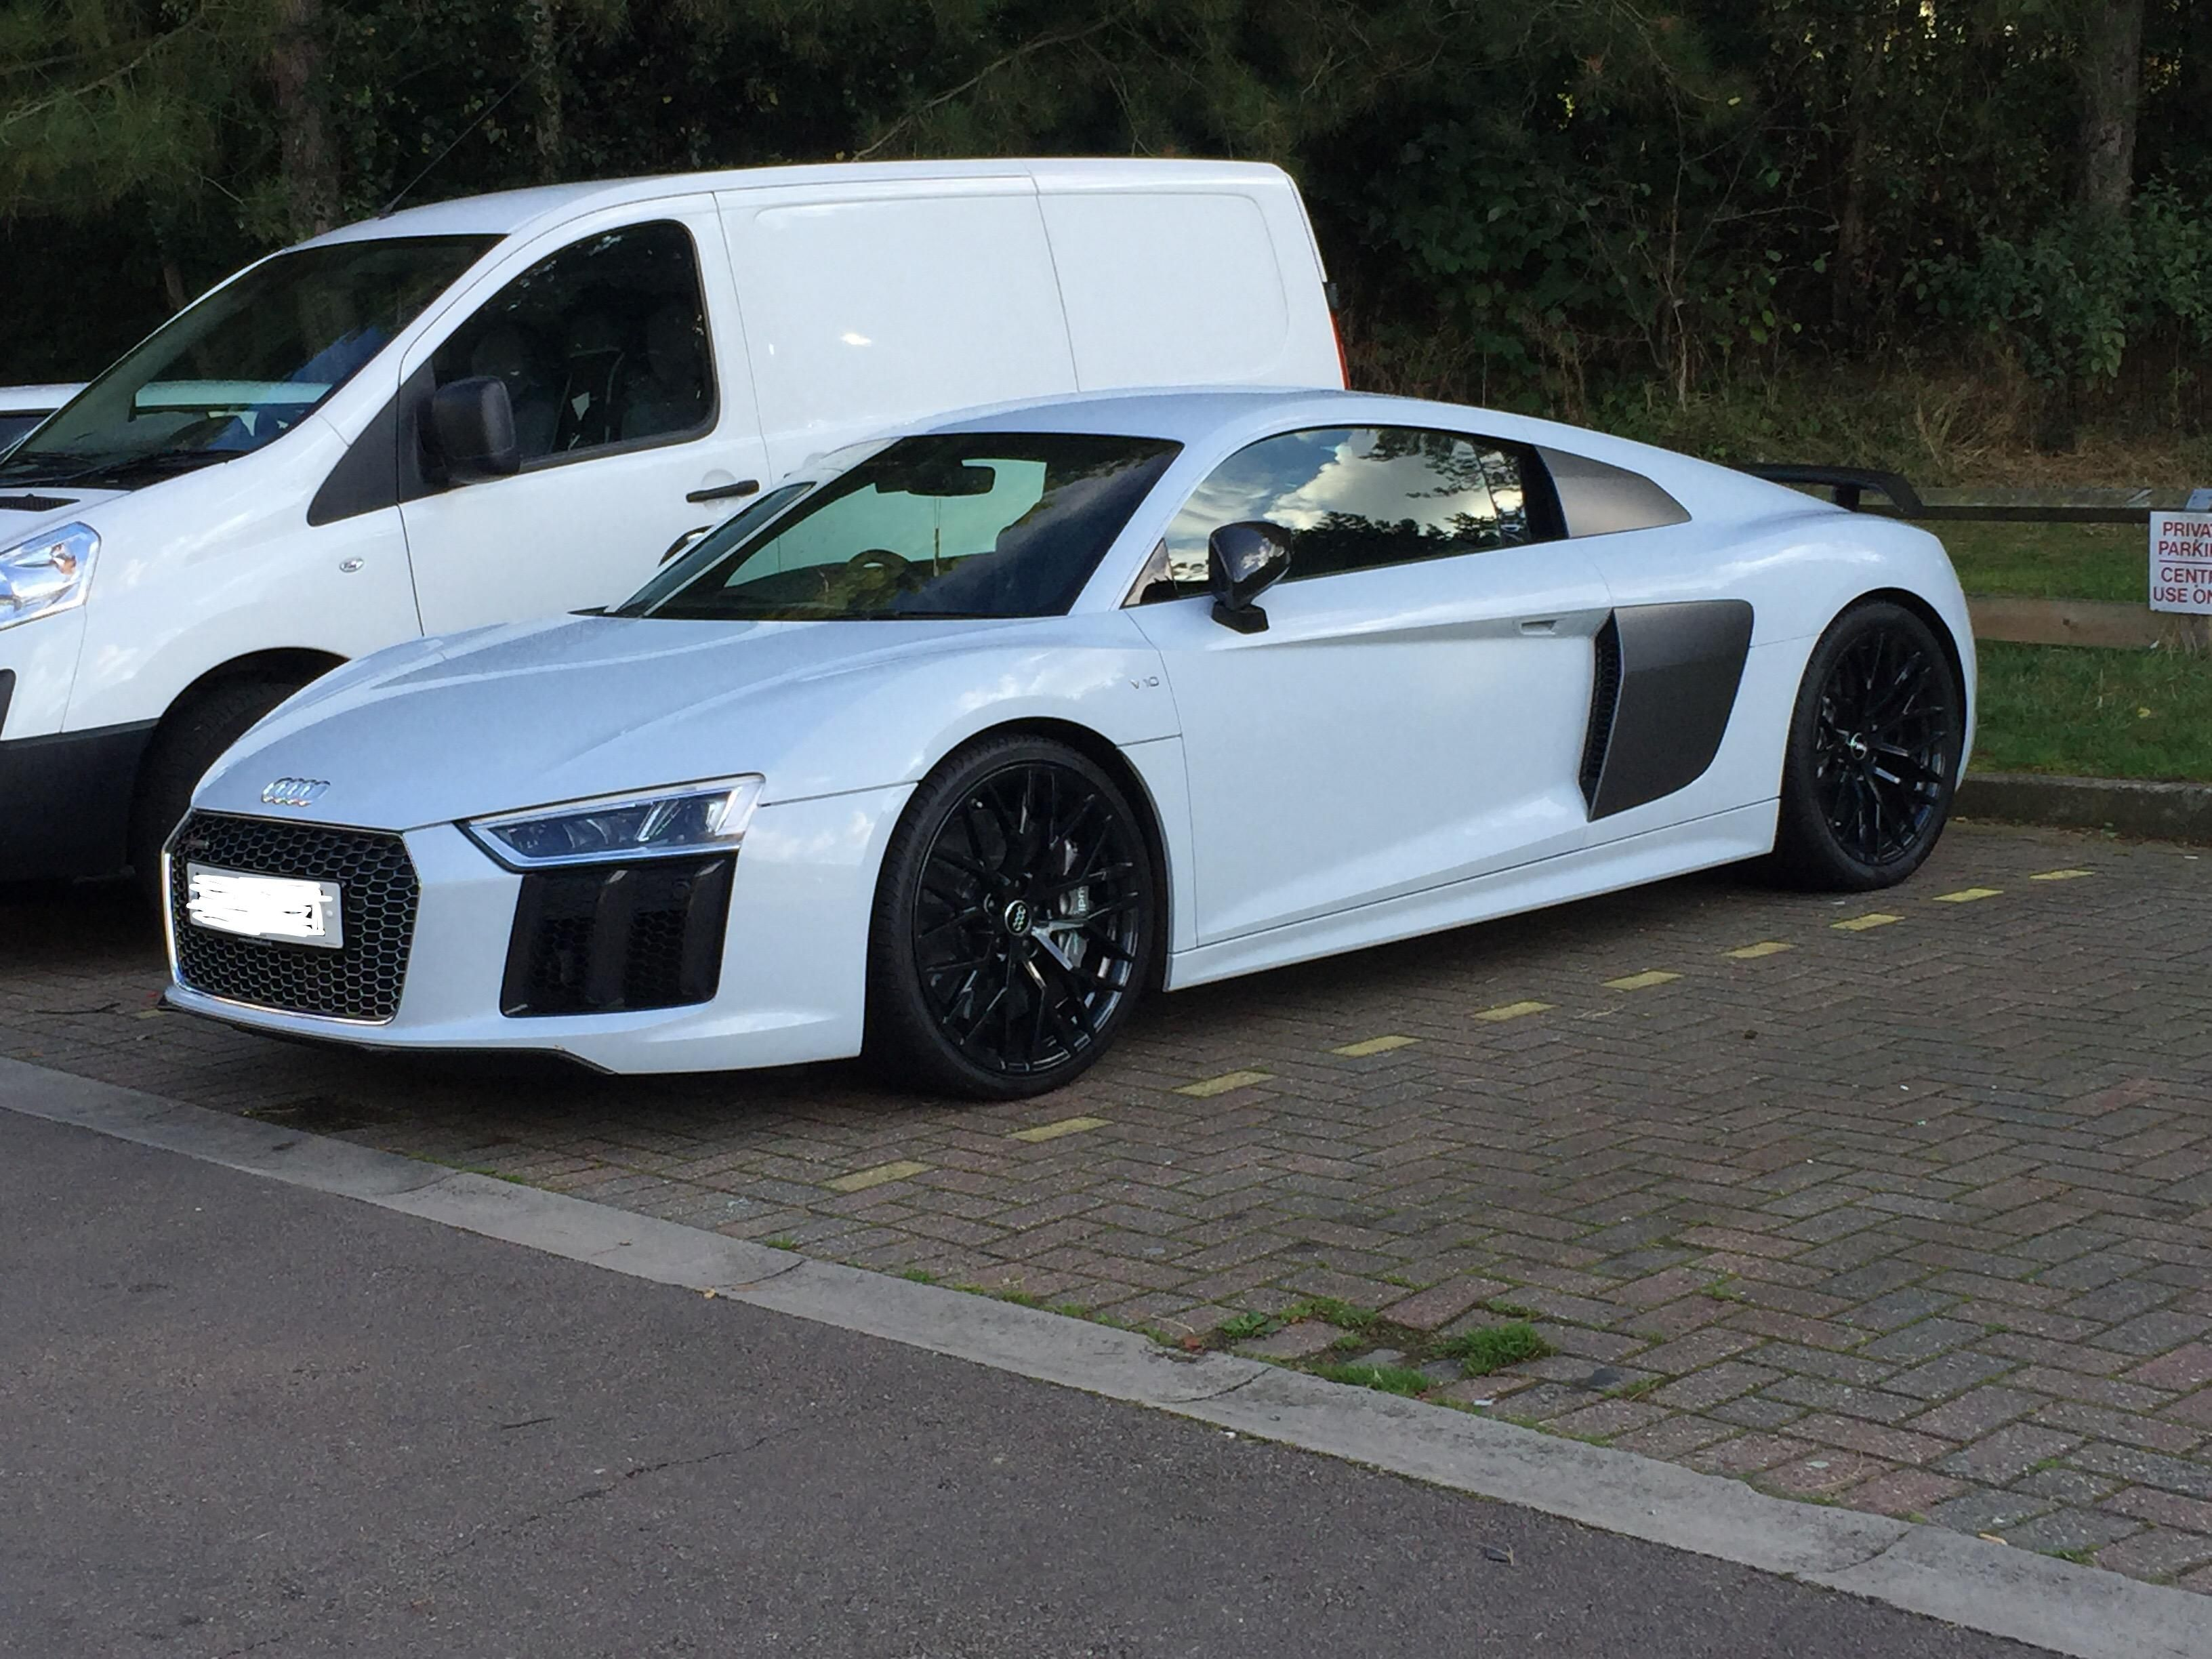 Spotted This 65 Plate Audi R8 V10 Outside A Rock Climbing Centre